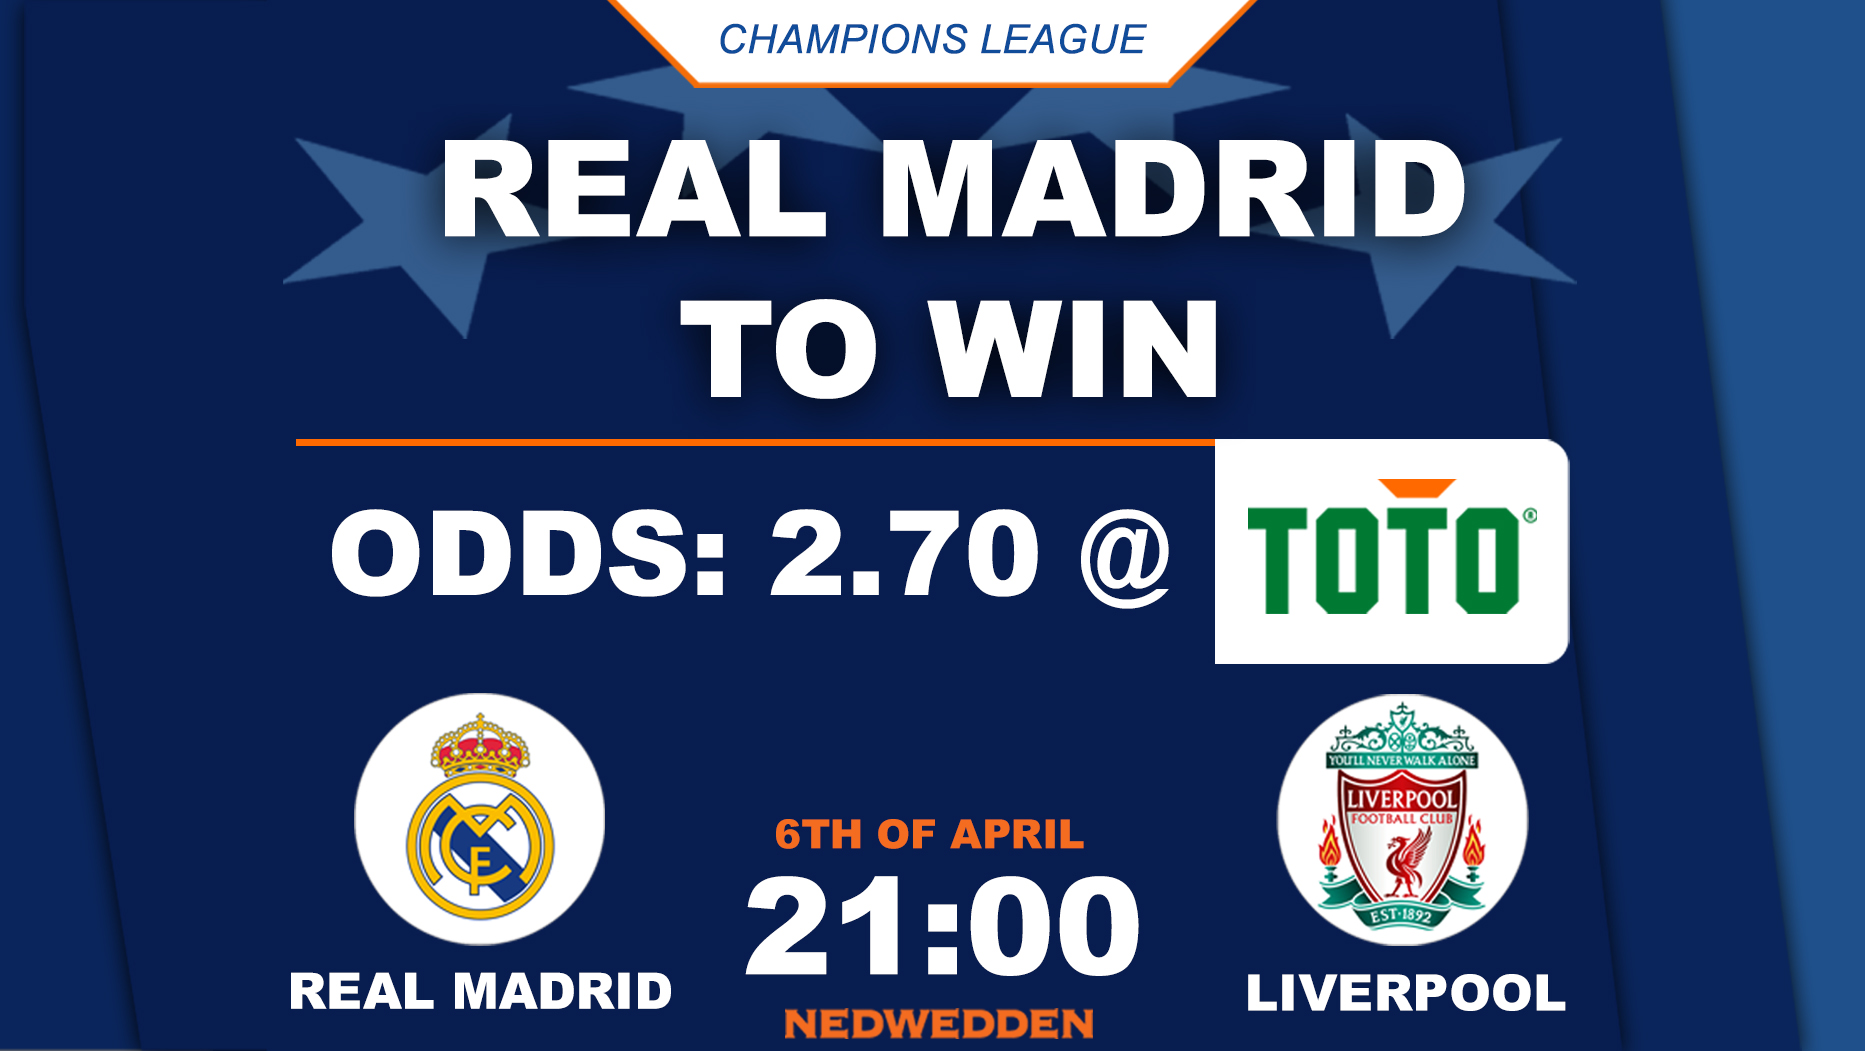 REAL MADRID VS LIVERPOOL CHAMPIONS LEAGUE